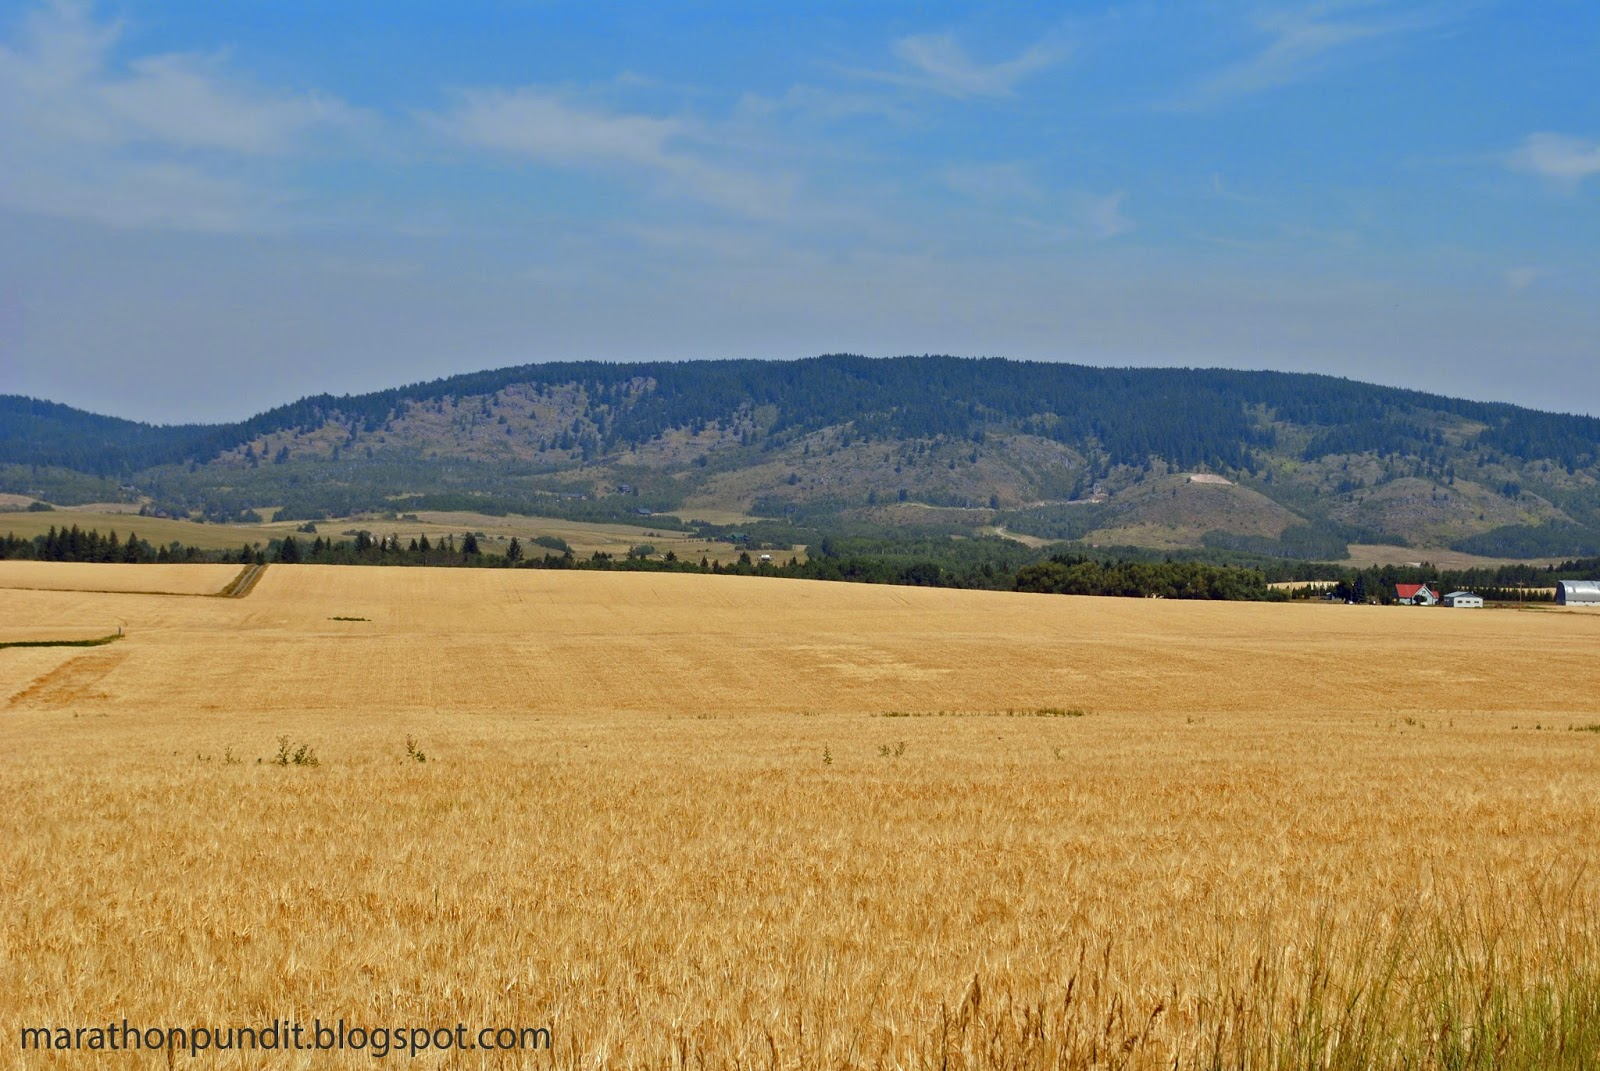 Idaho if of course famous for potatoes, but it is also a leading wheat producing state. Here are some photographs that Mrs. Marathon Pundit took during her ...